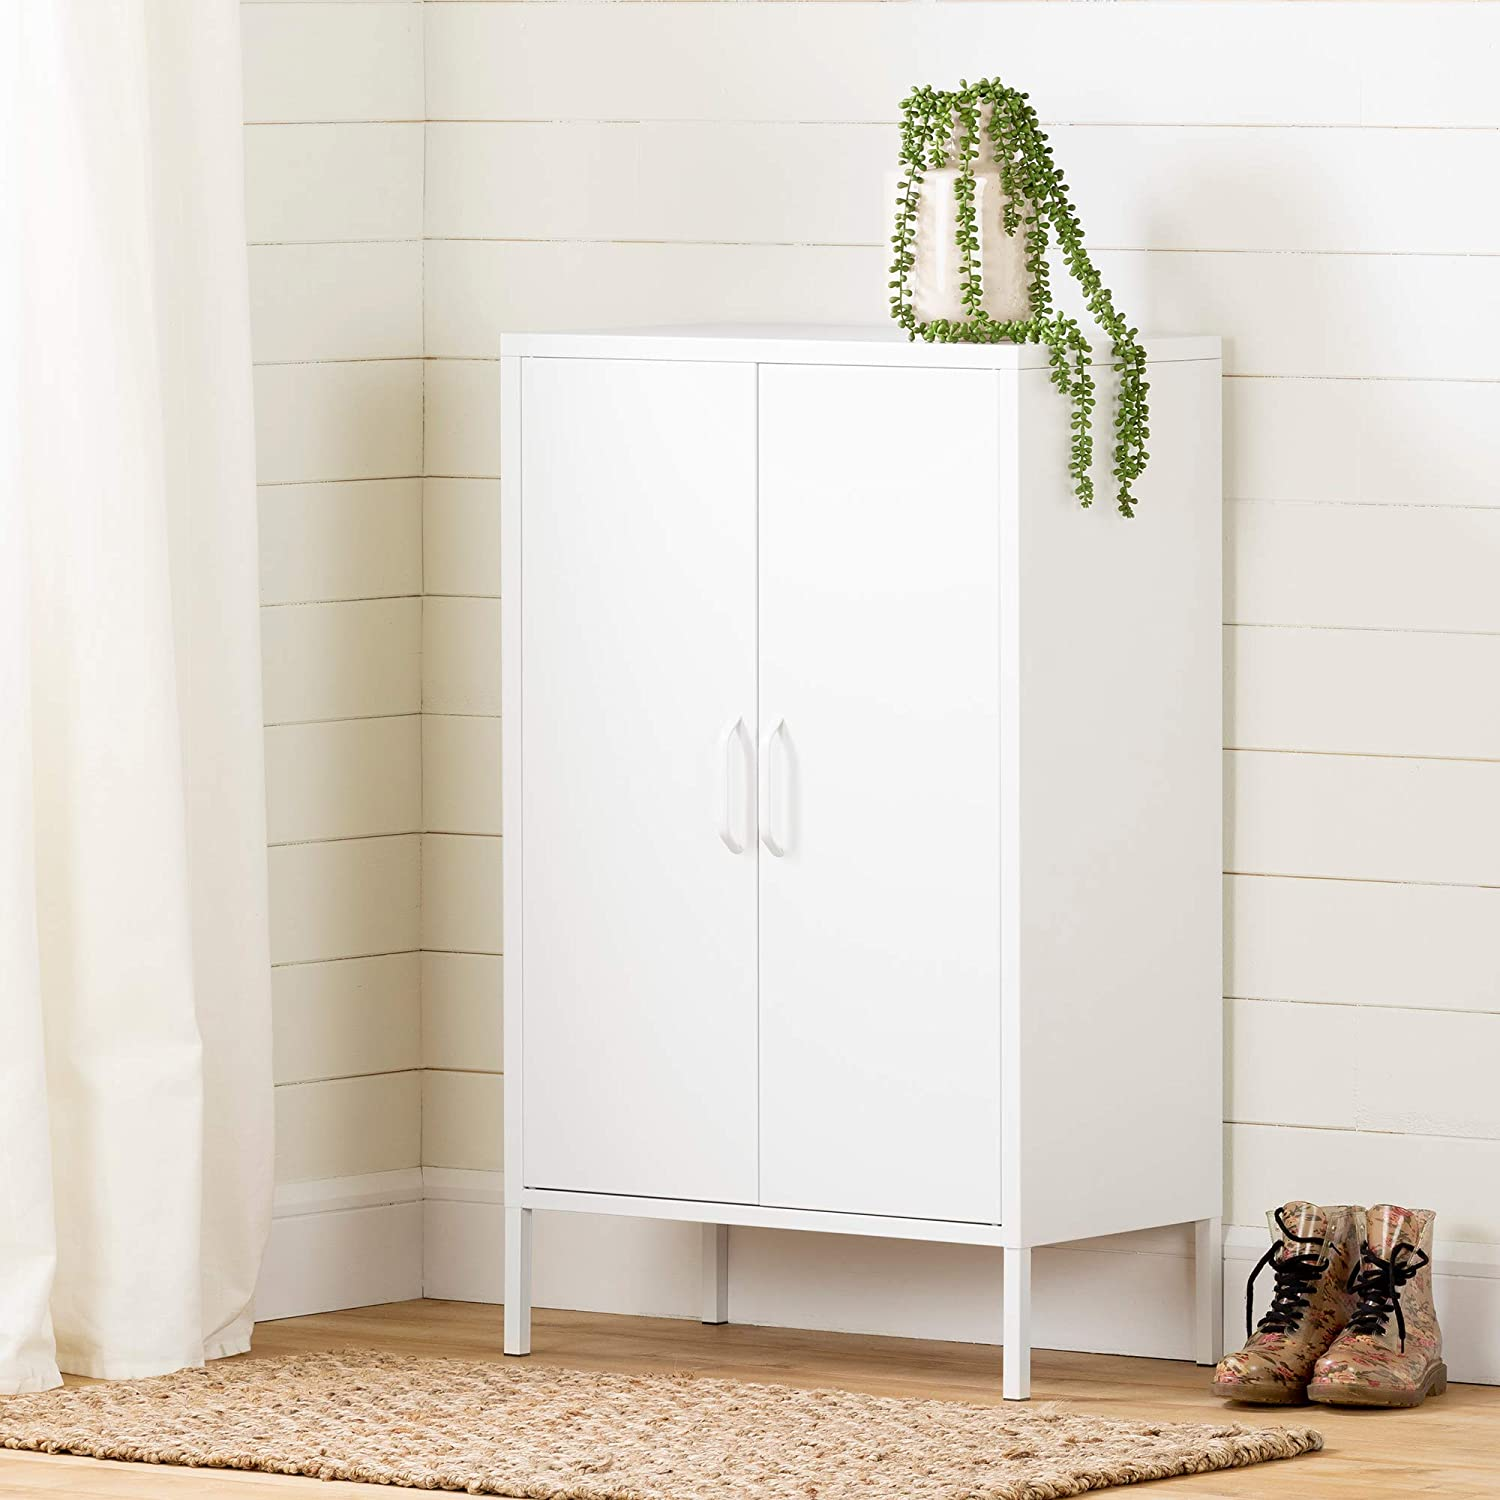 South Shore Furniture Crea Metal 2 Door Accent Cabinet White 13079 Amazon Ca Home Kitchen